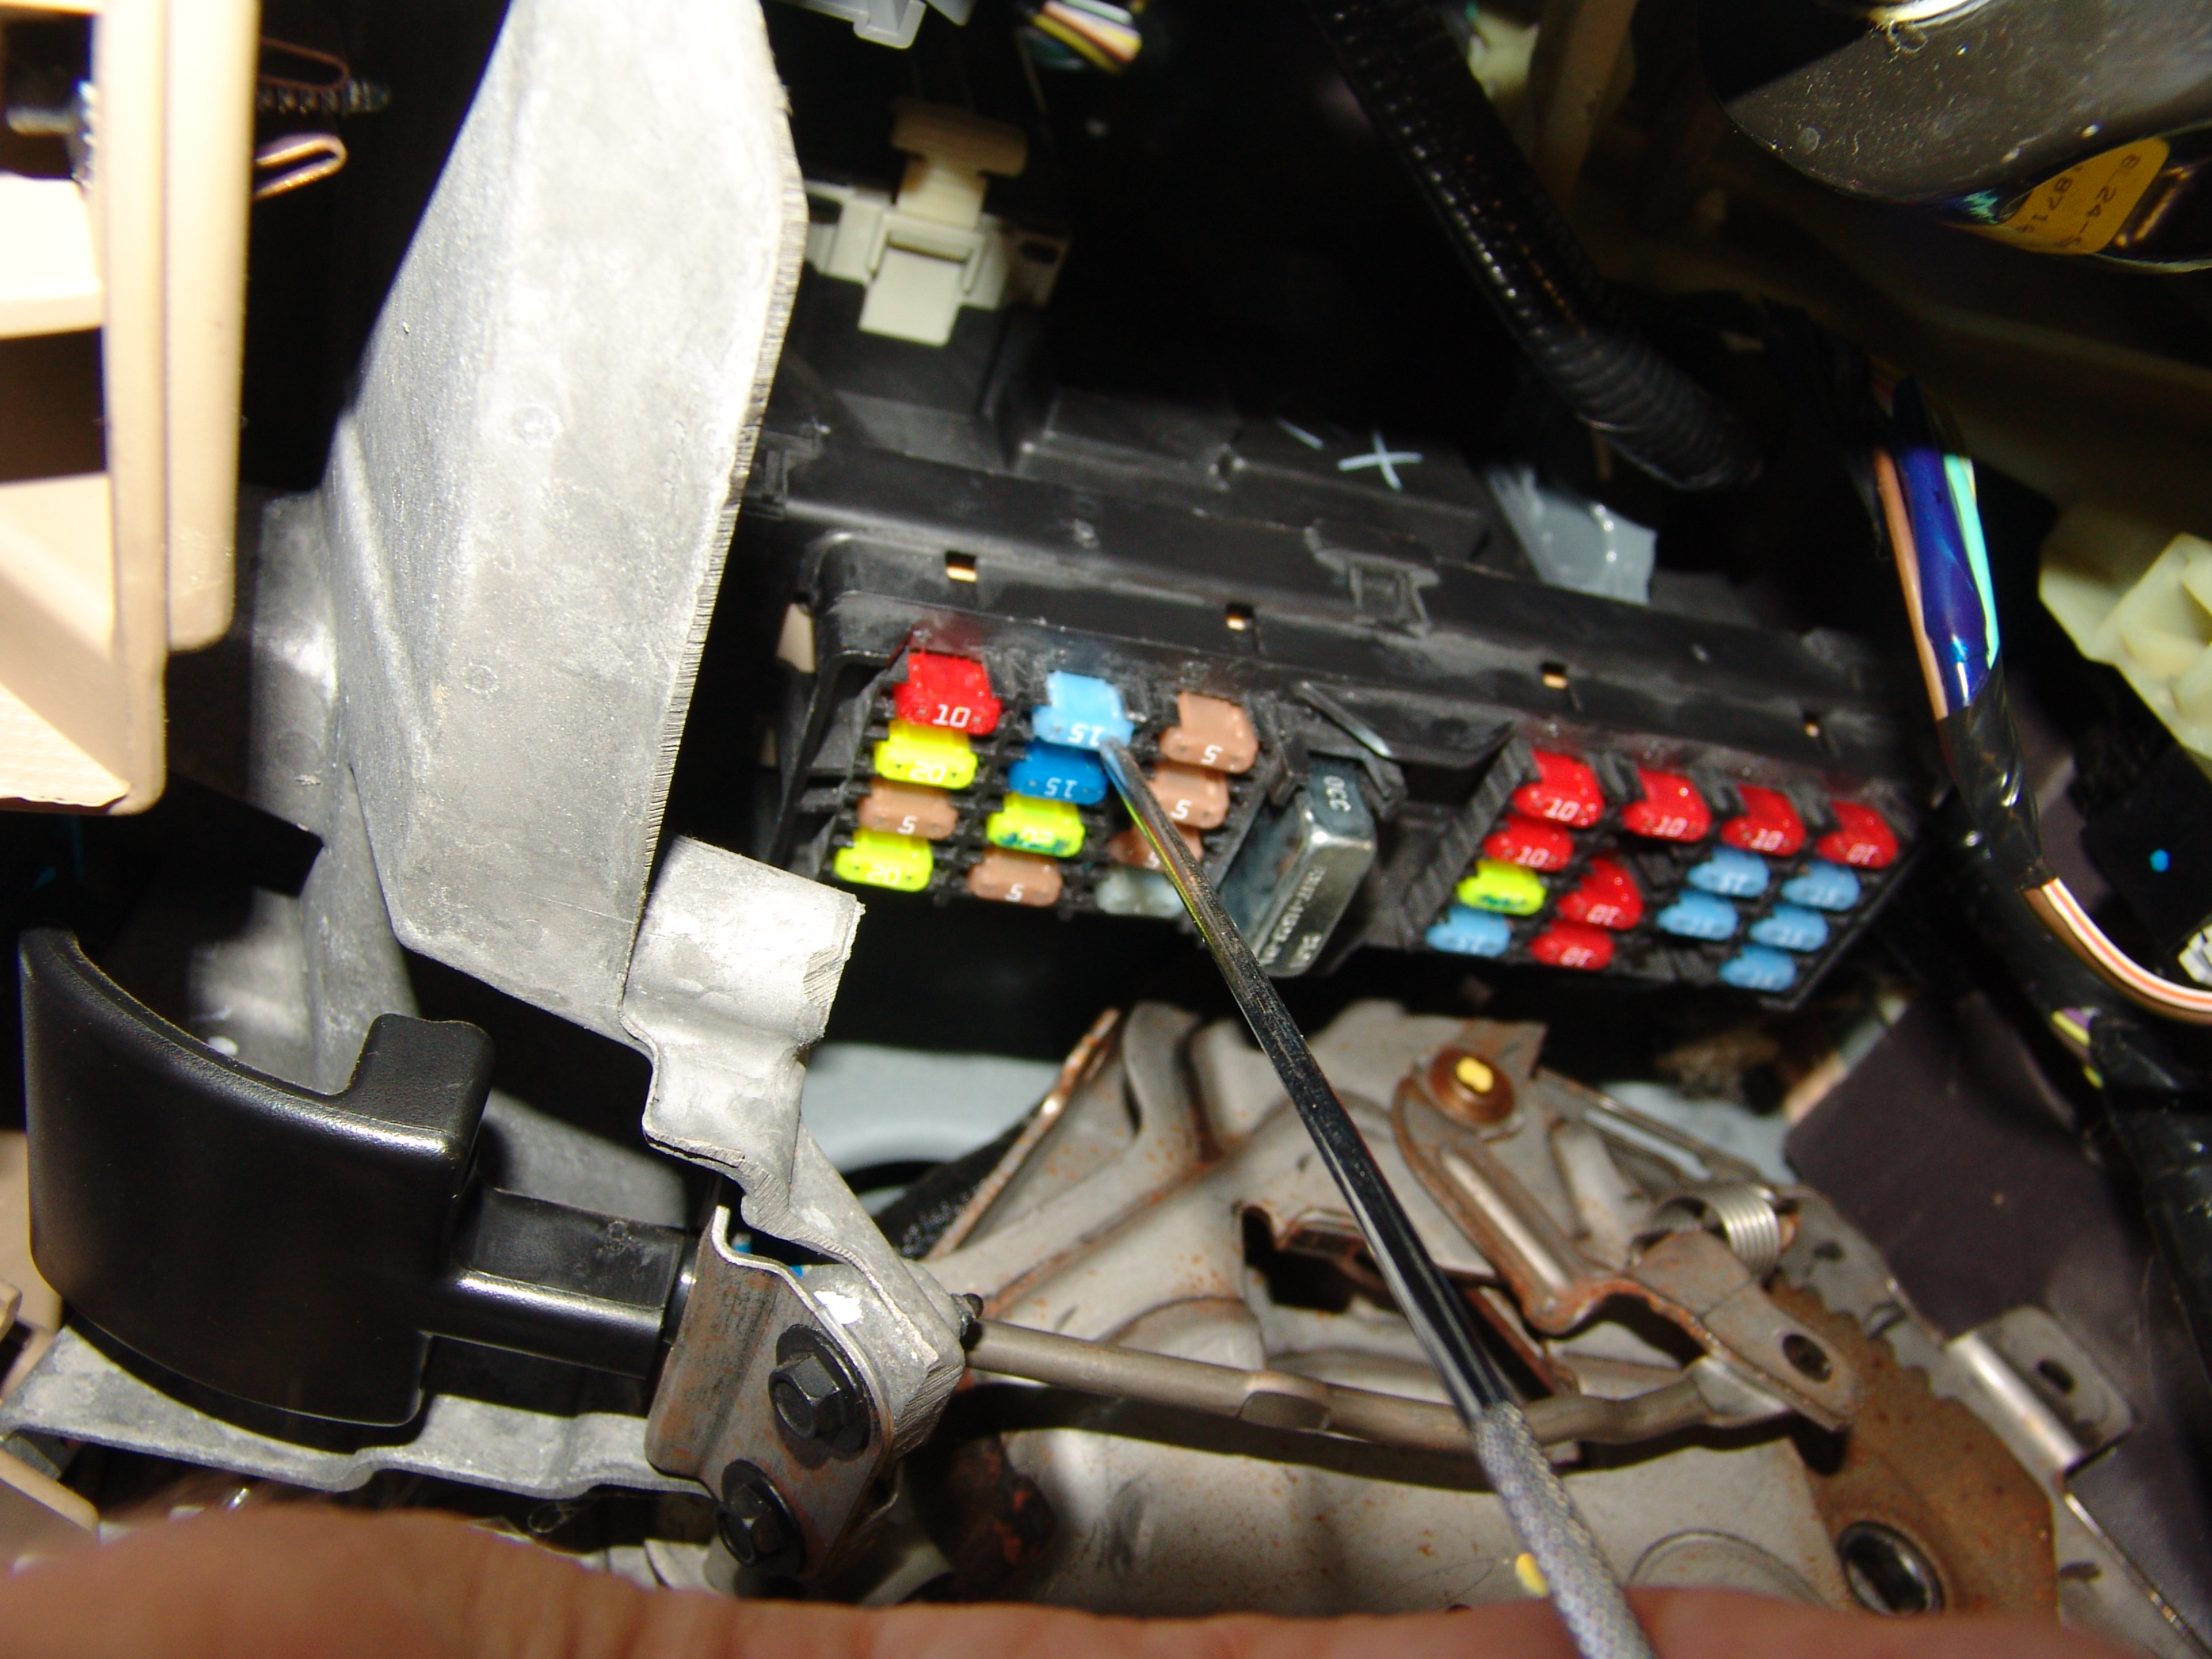 Sparkys Answers 2010 Ford Explorer No Crank Condition Fuse 8 Box Has Blown It Took Some Effort To Remove The Melted Diode Using A Pair Of Pliers Grasp And Screwdriver Chip Away At Seam